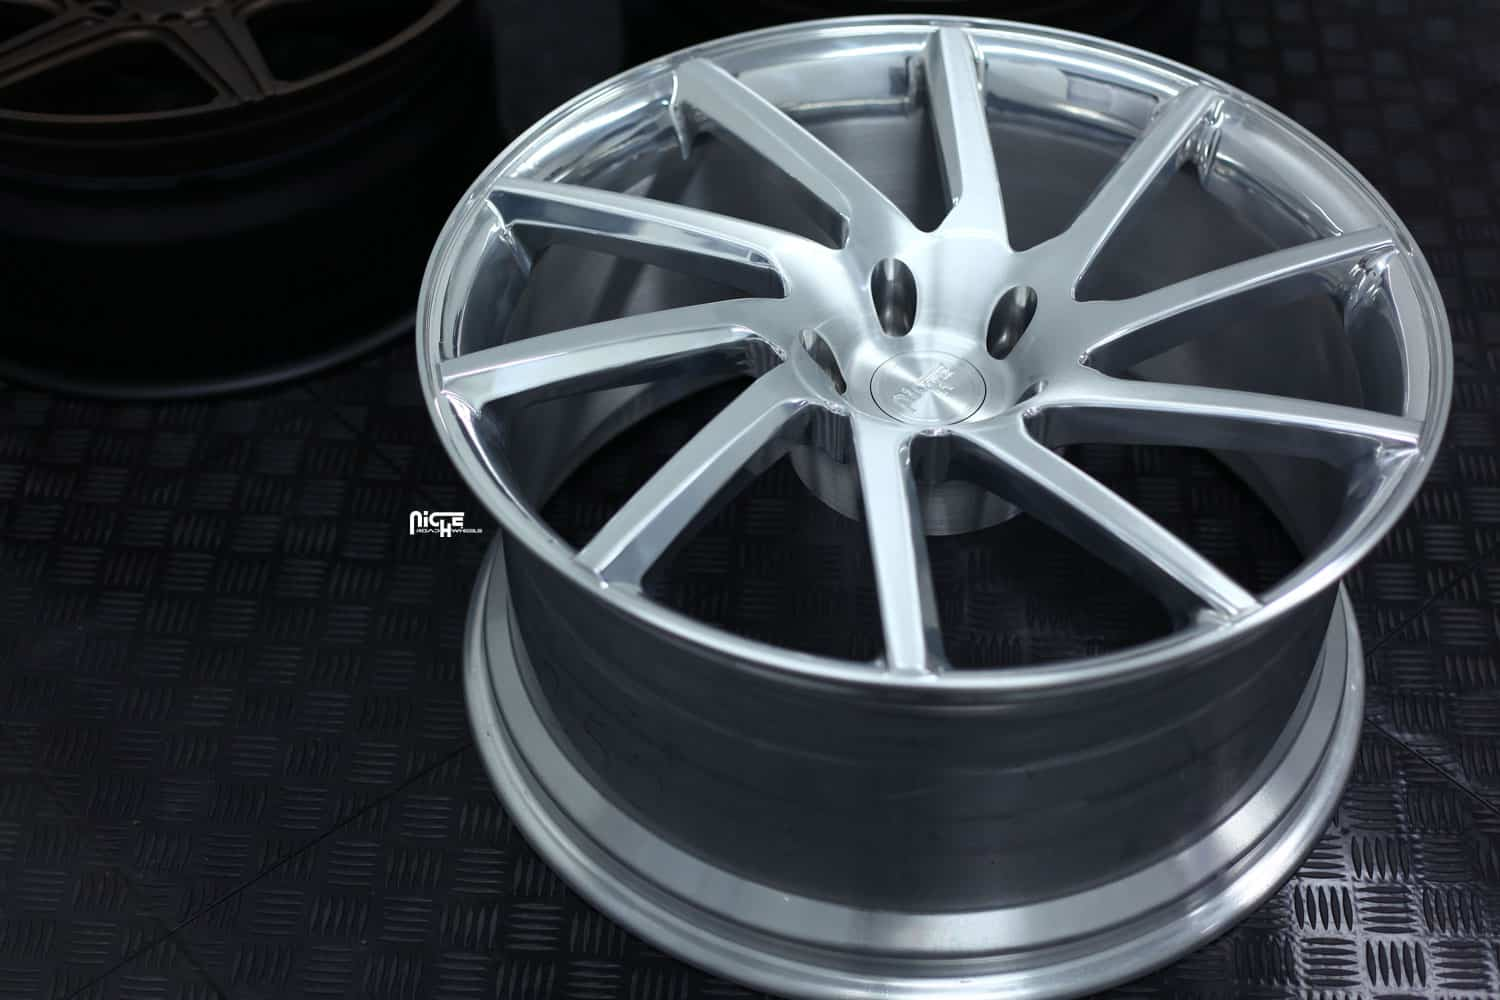 niche-forged-rs-10-concave-brushed-with-clear-wheels.jpg